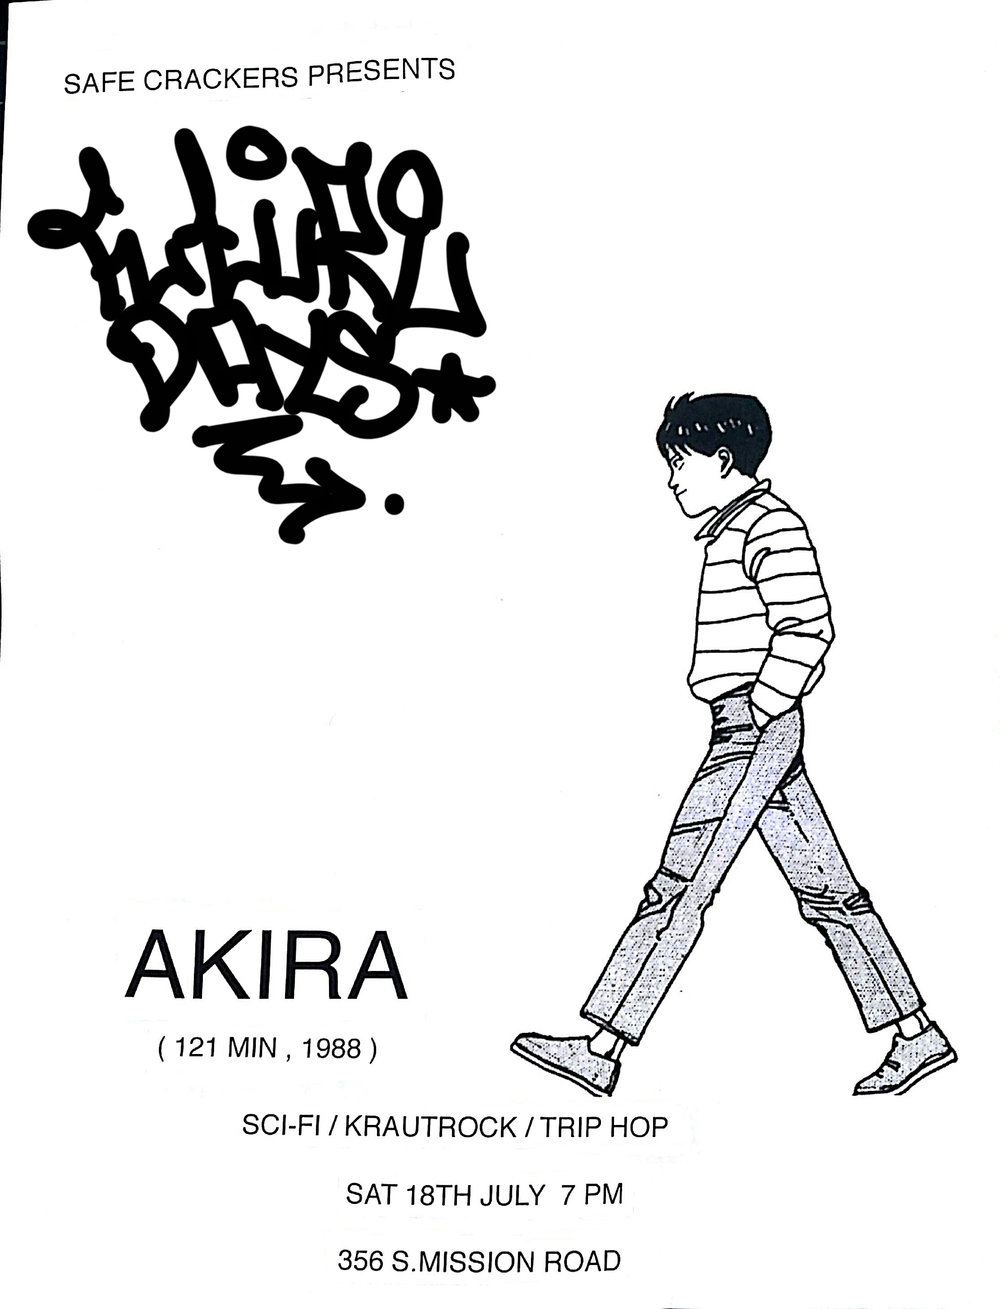 Future Days - An Evening of Sci-fi, Krautrock and Trip-Hop    July 18th - Akira screening